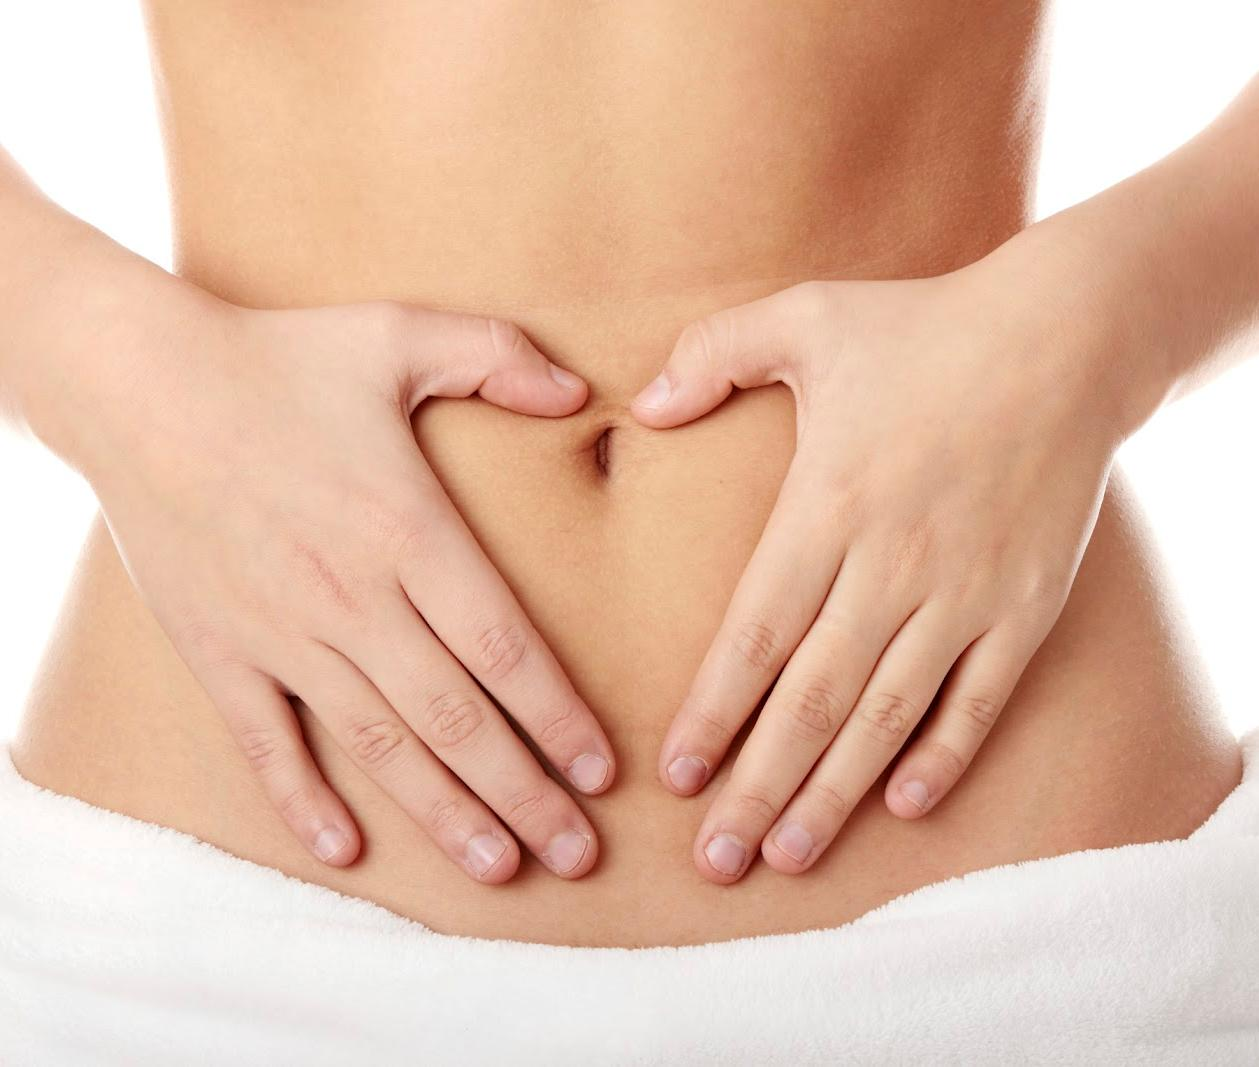 Colonic irrigation in Oxford